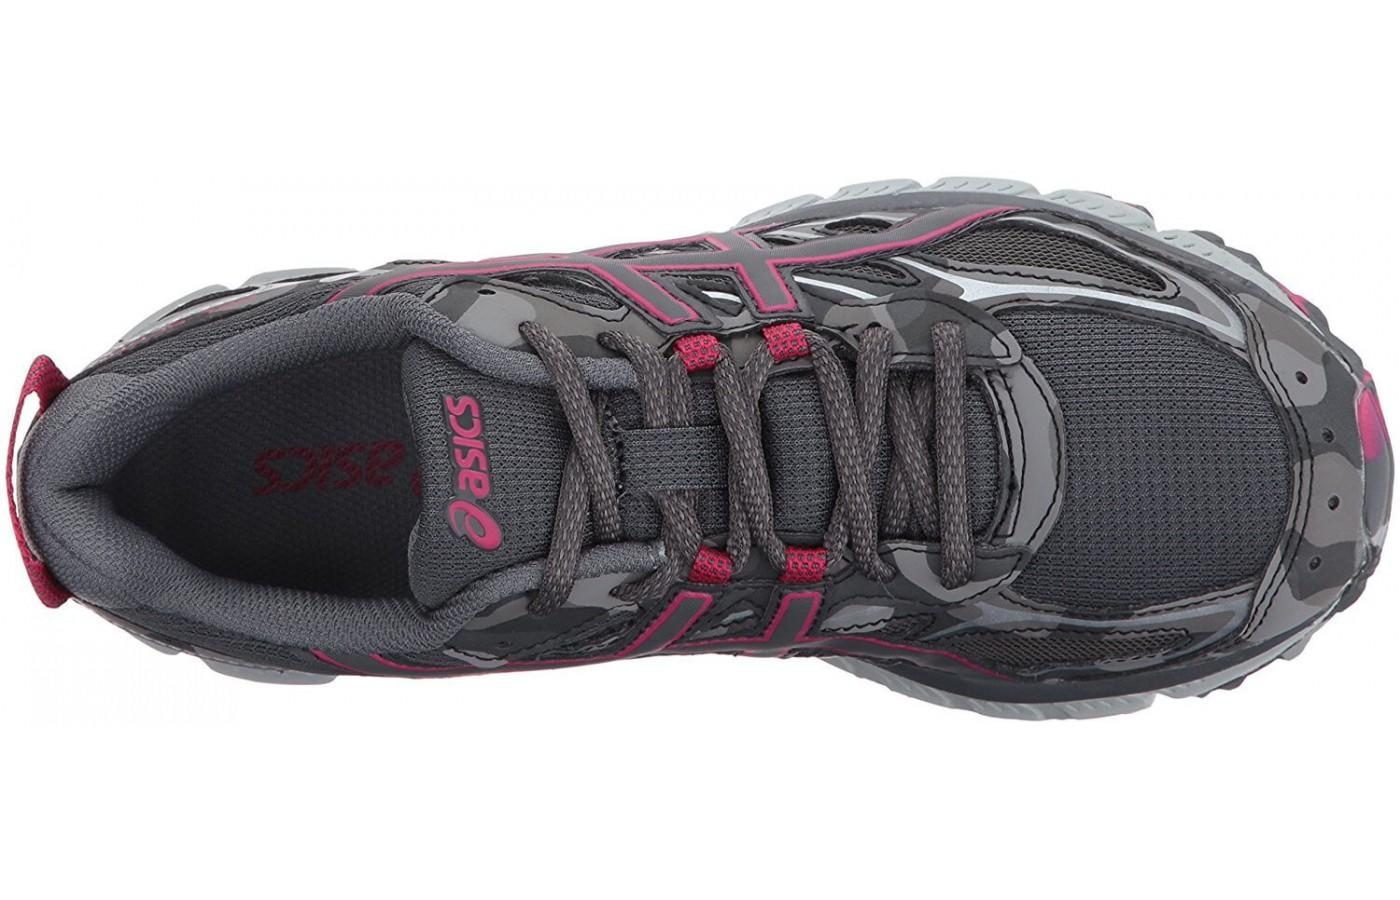 the breathable mesh upper keeps the foot cool and dry.